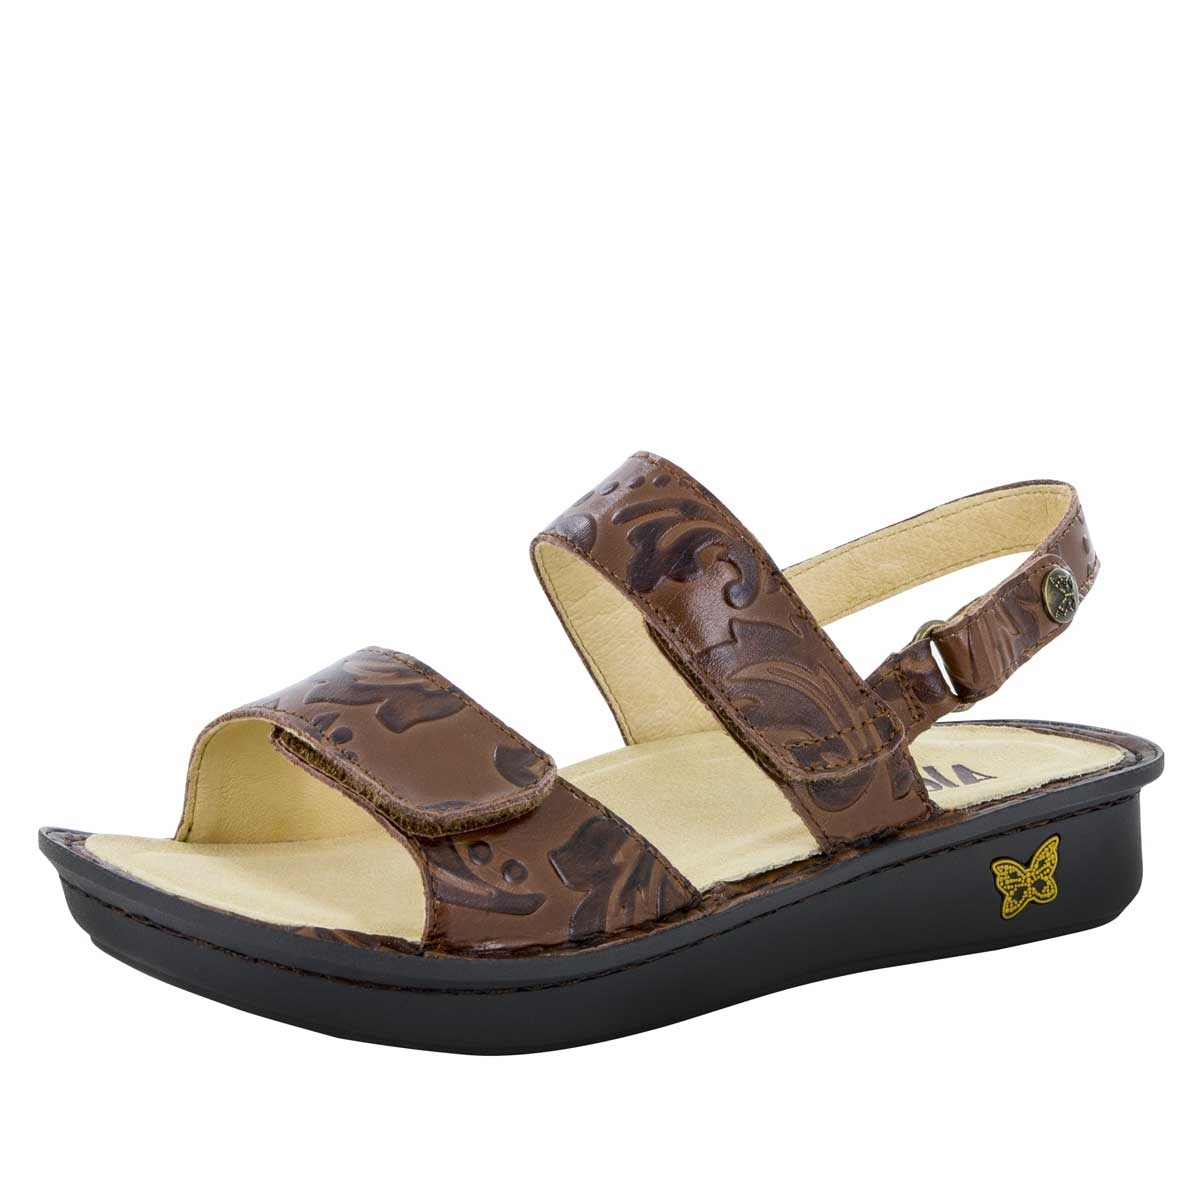 comforter women nubuck sandals a p comfort warwick for plume save la